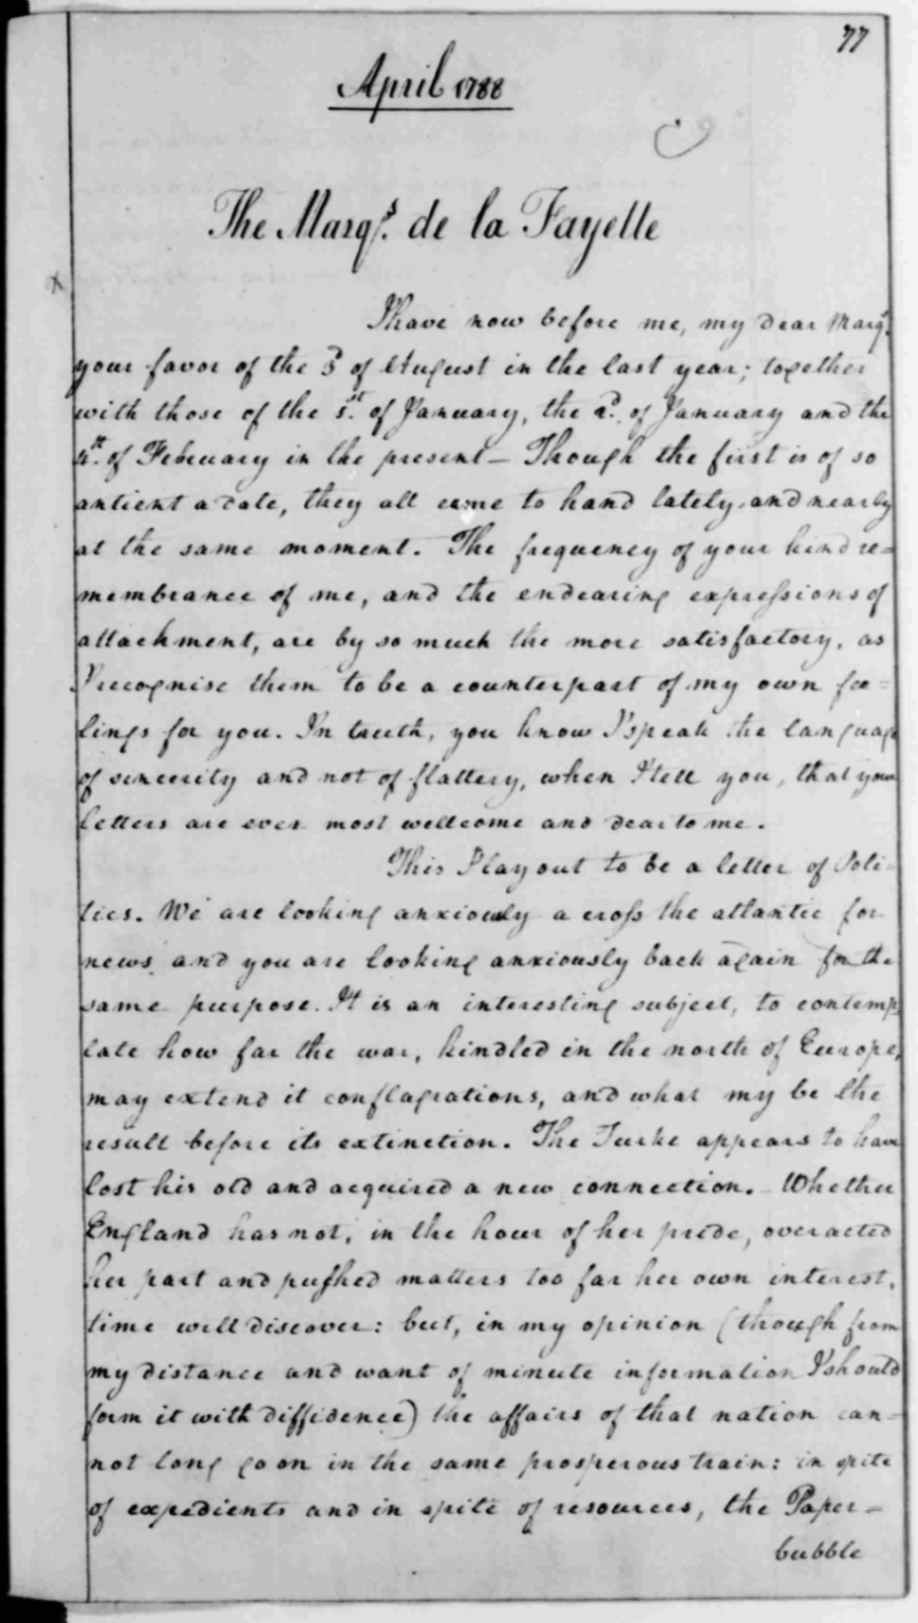 George Washington letter to the Marquis de Lafayette, April 28, 1788